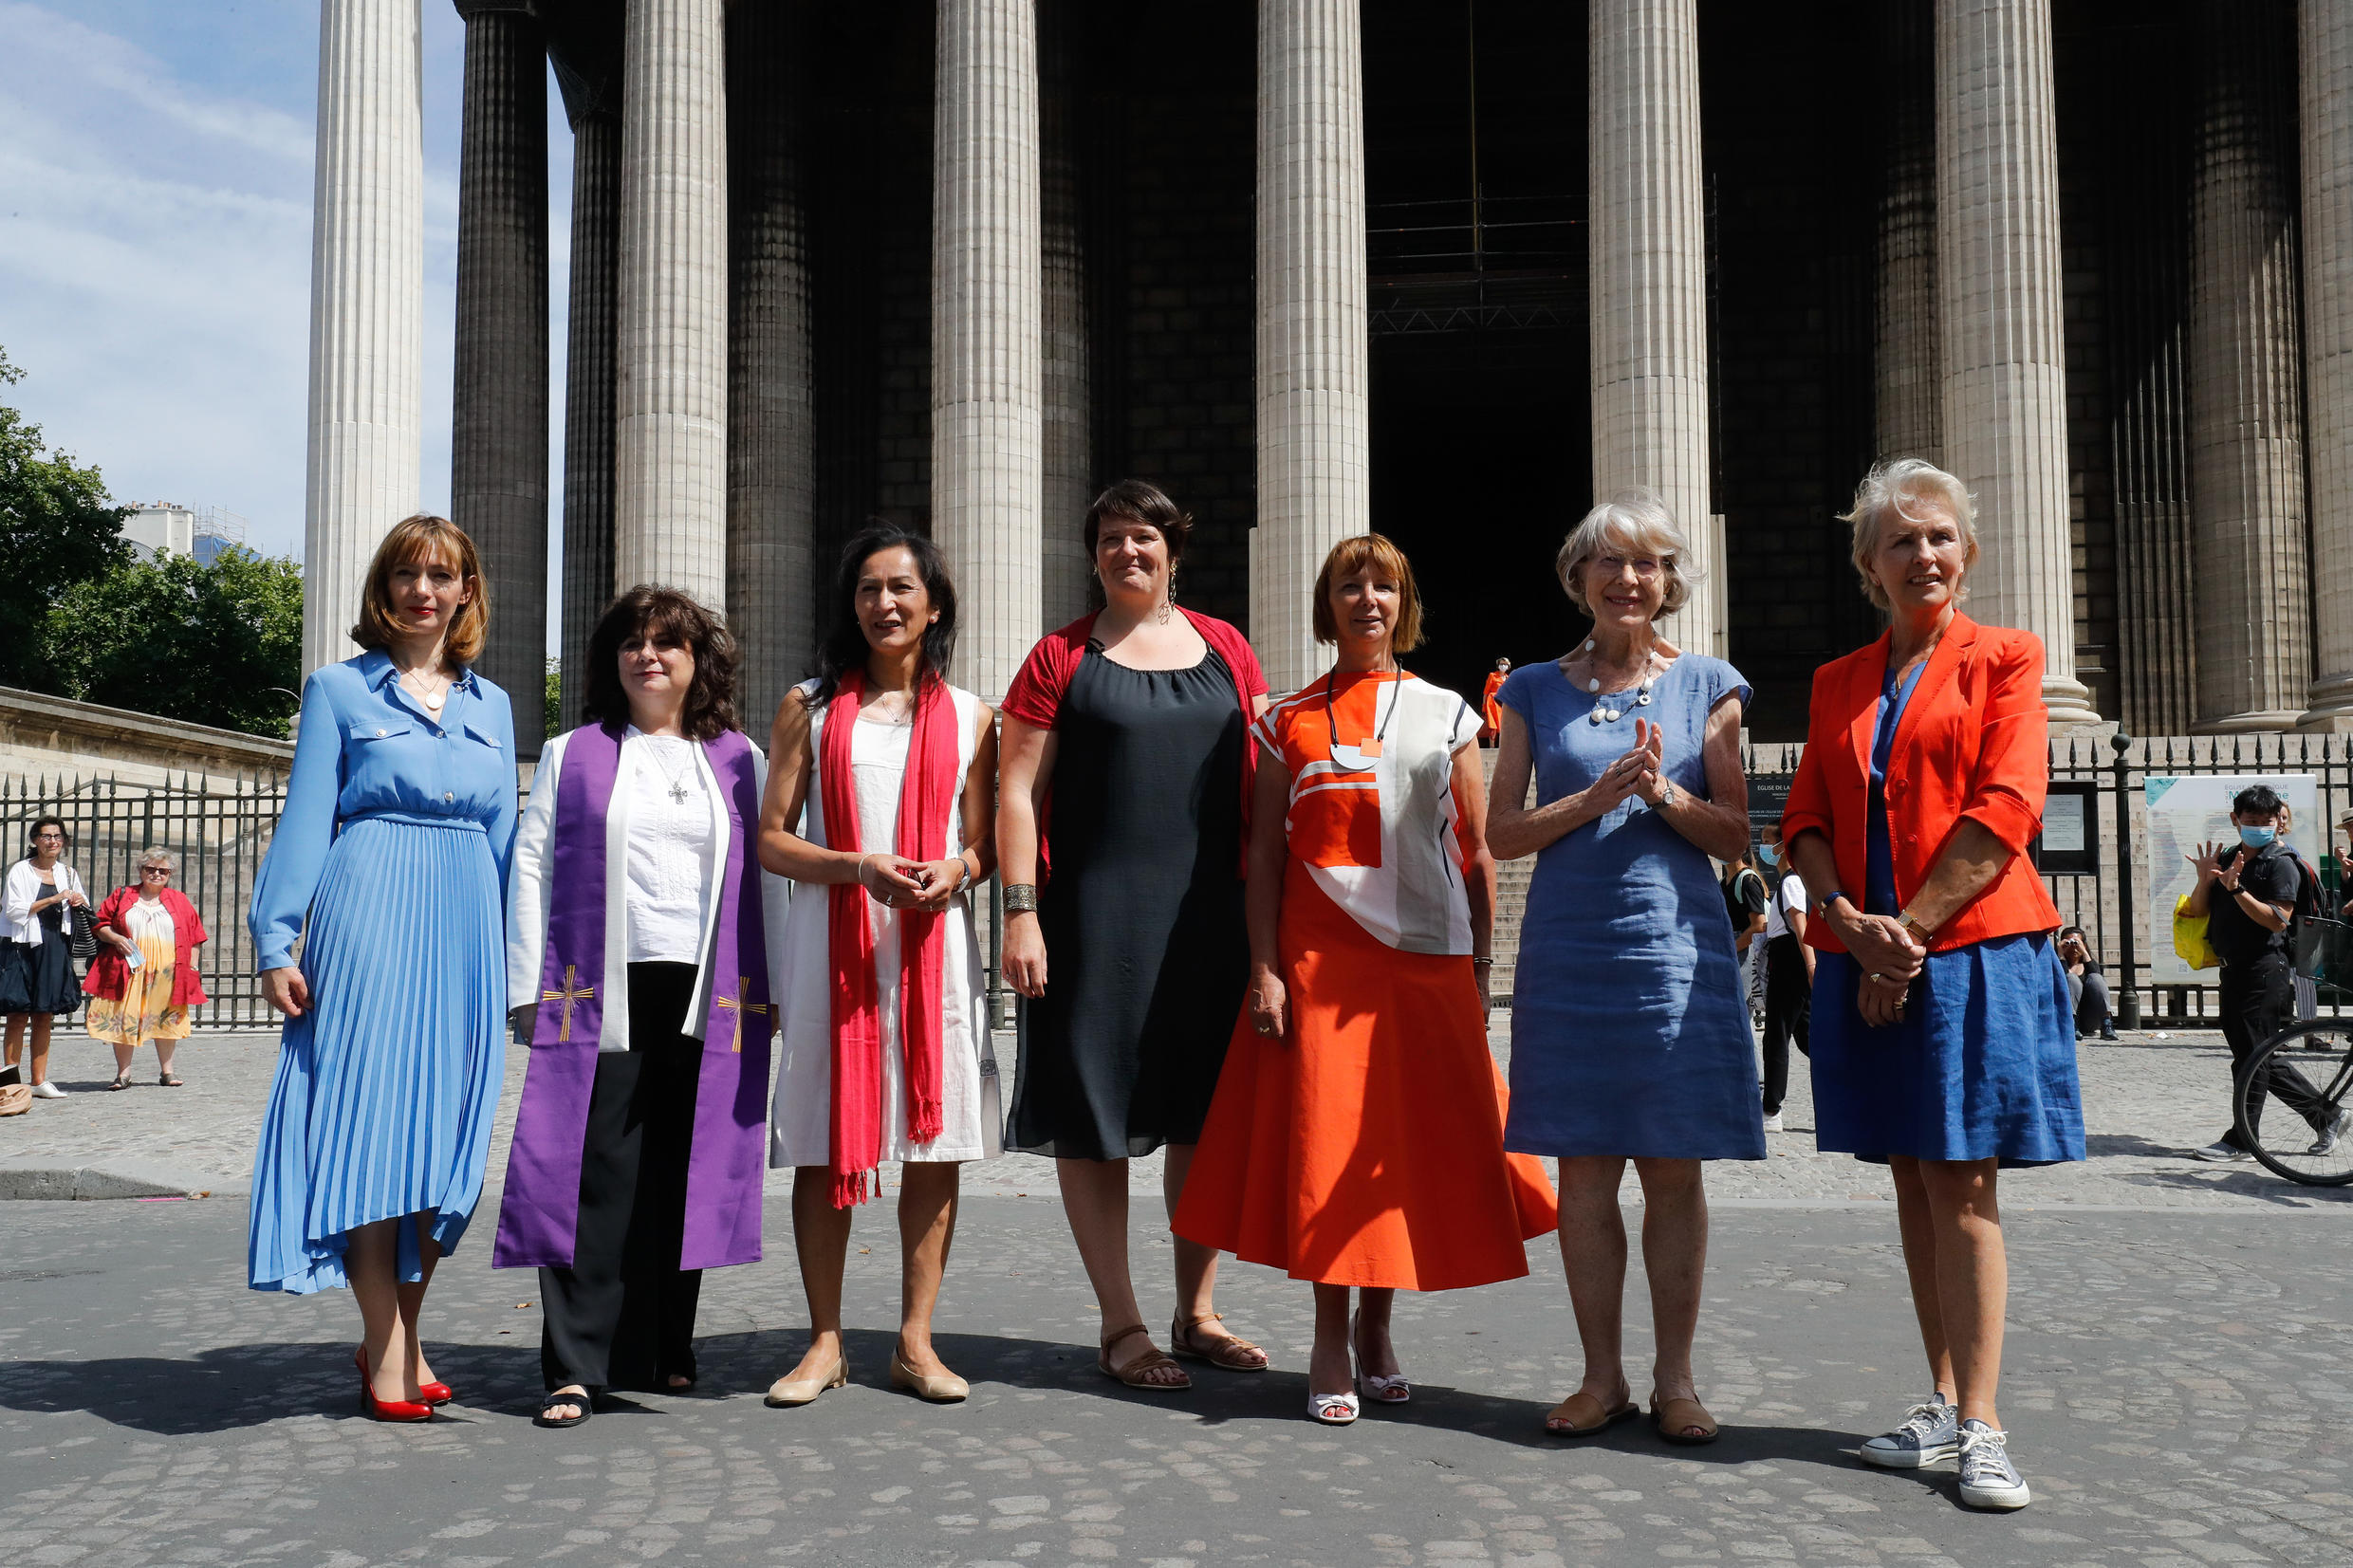 From left: Helene Pichon, Christina Moreira, Loan Rocher, Marie-Automne Thepot, Sylvaine Landrivon, Anne Soupa and Laurence de Bourbon Parme at the Madeleine church in Paris on Wednesday.